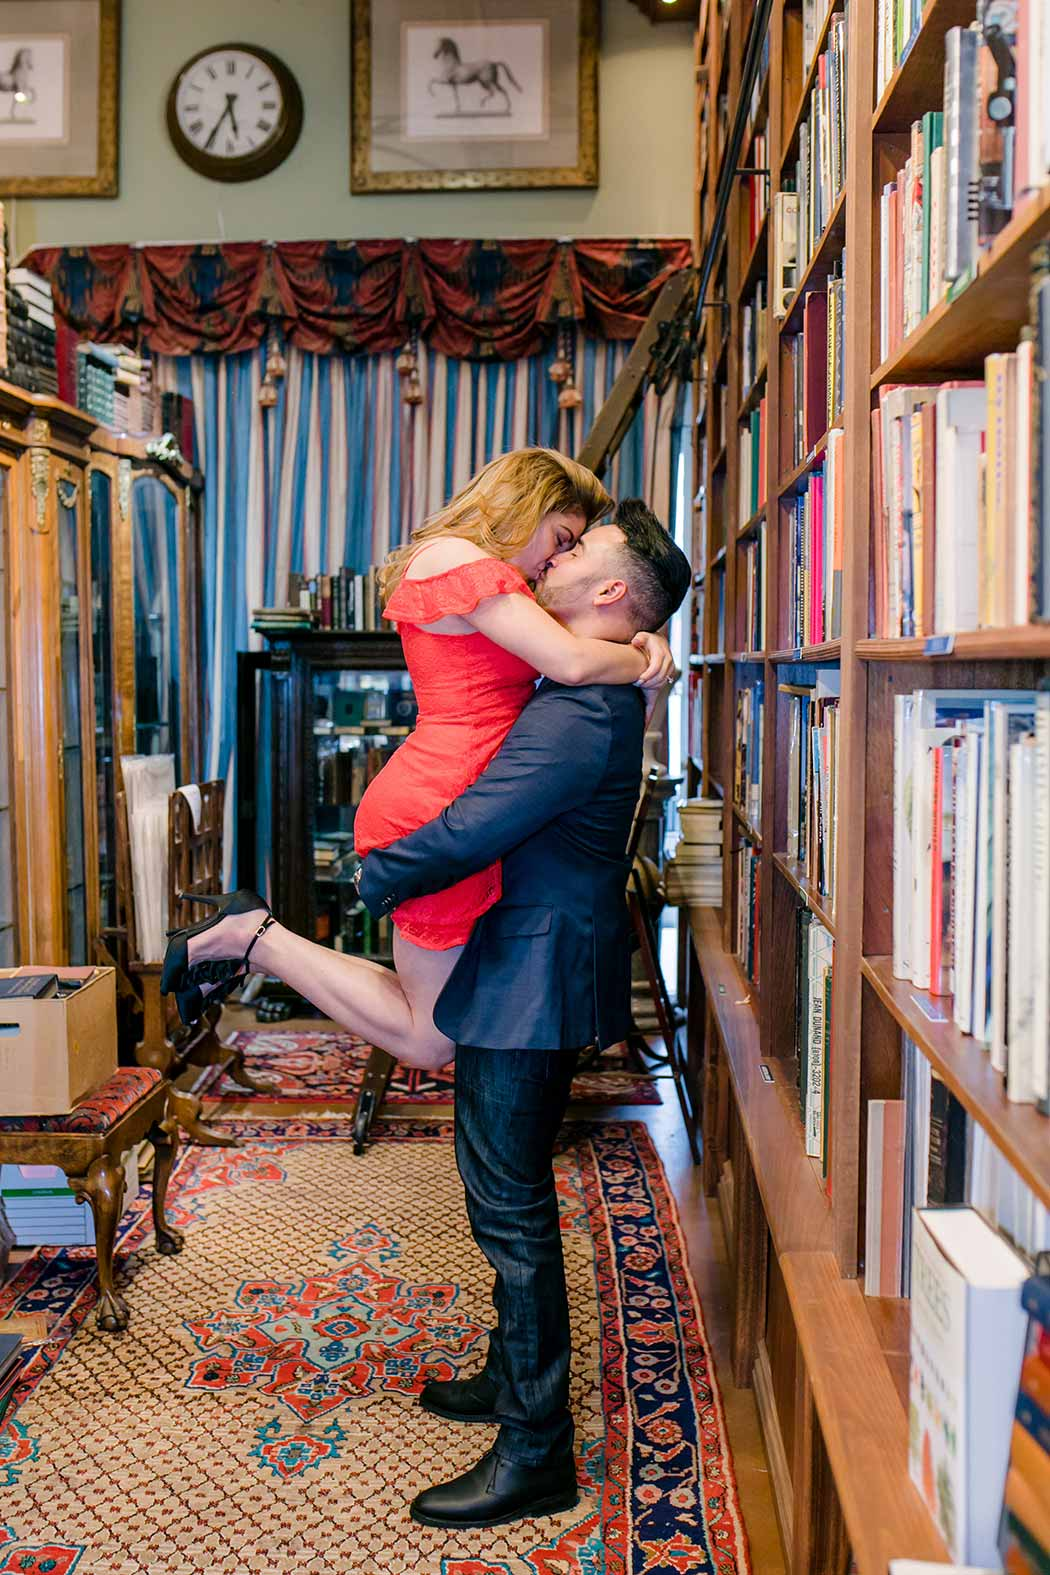 couple embrace for a flirty engagement session in old florida book shop